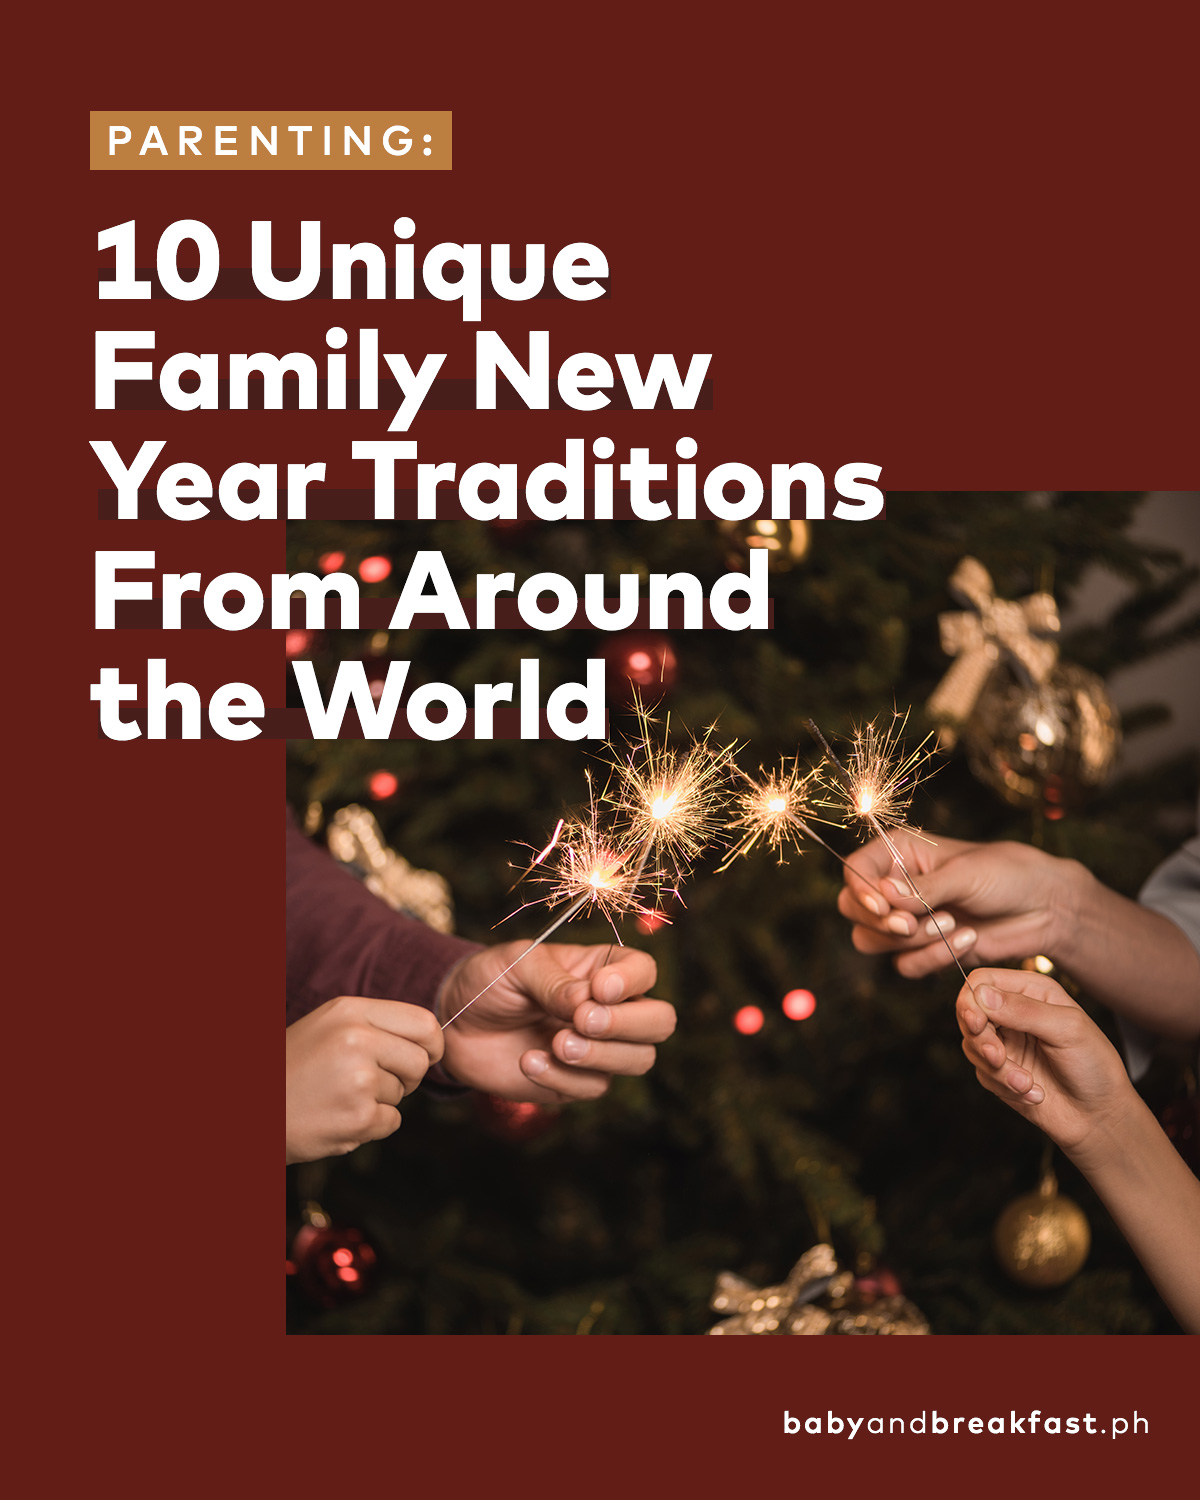 10 Unique Family New Year Traditions From Around the World